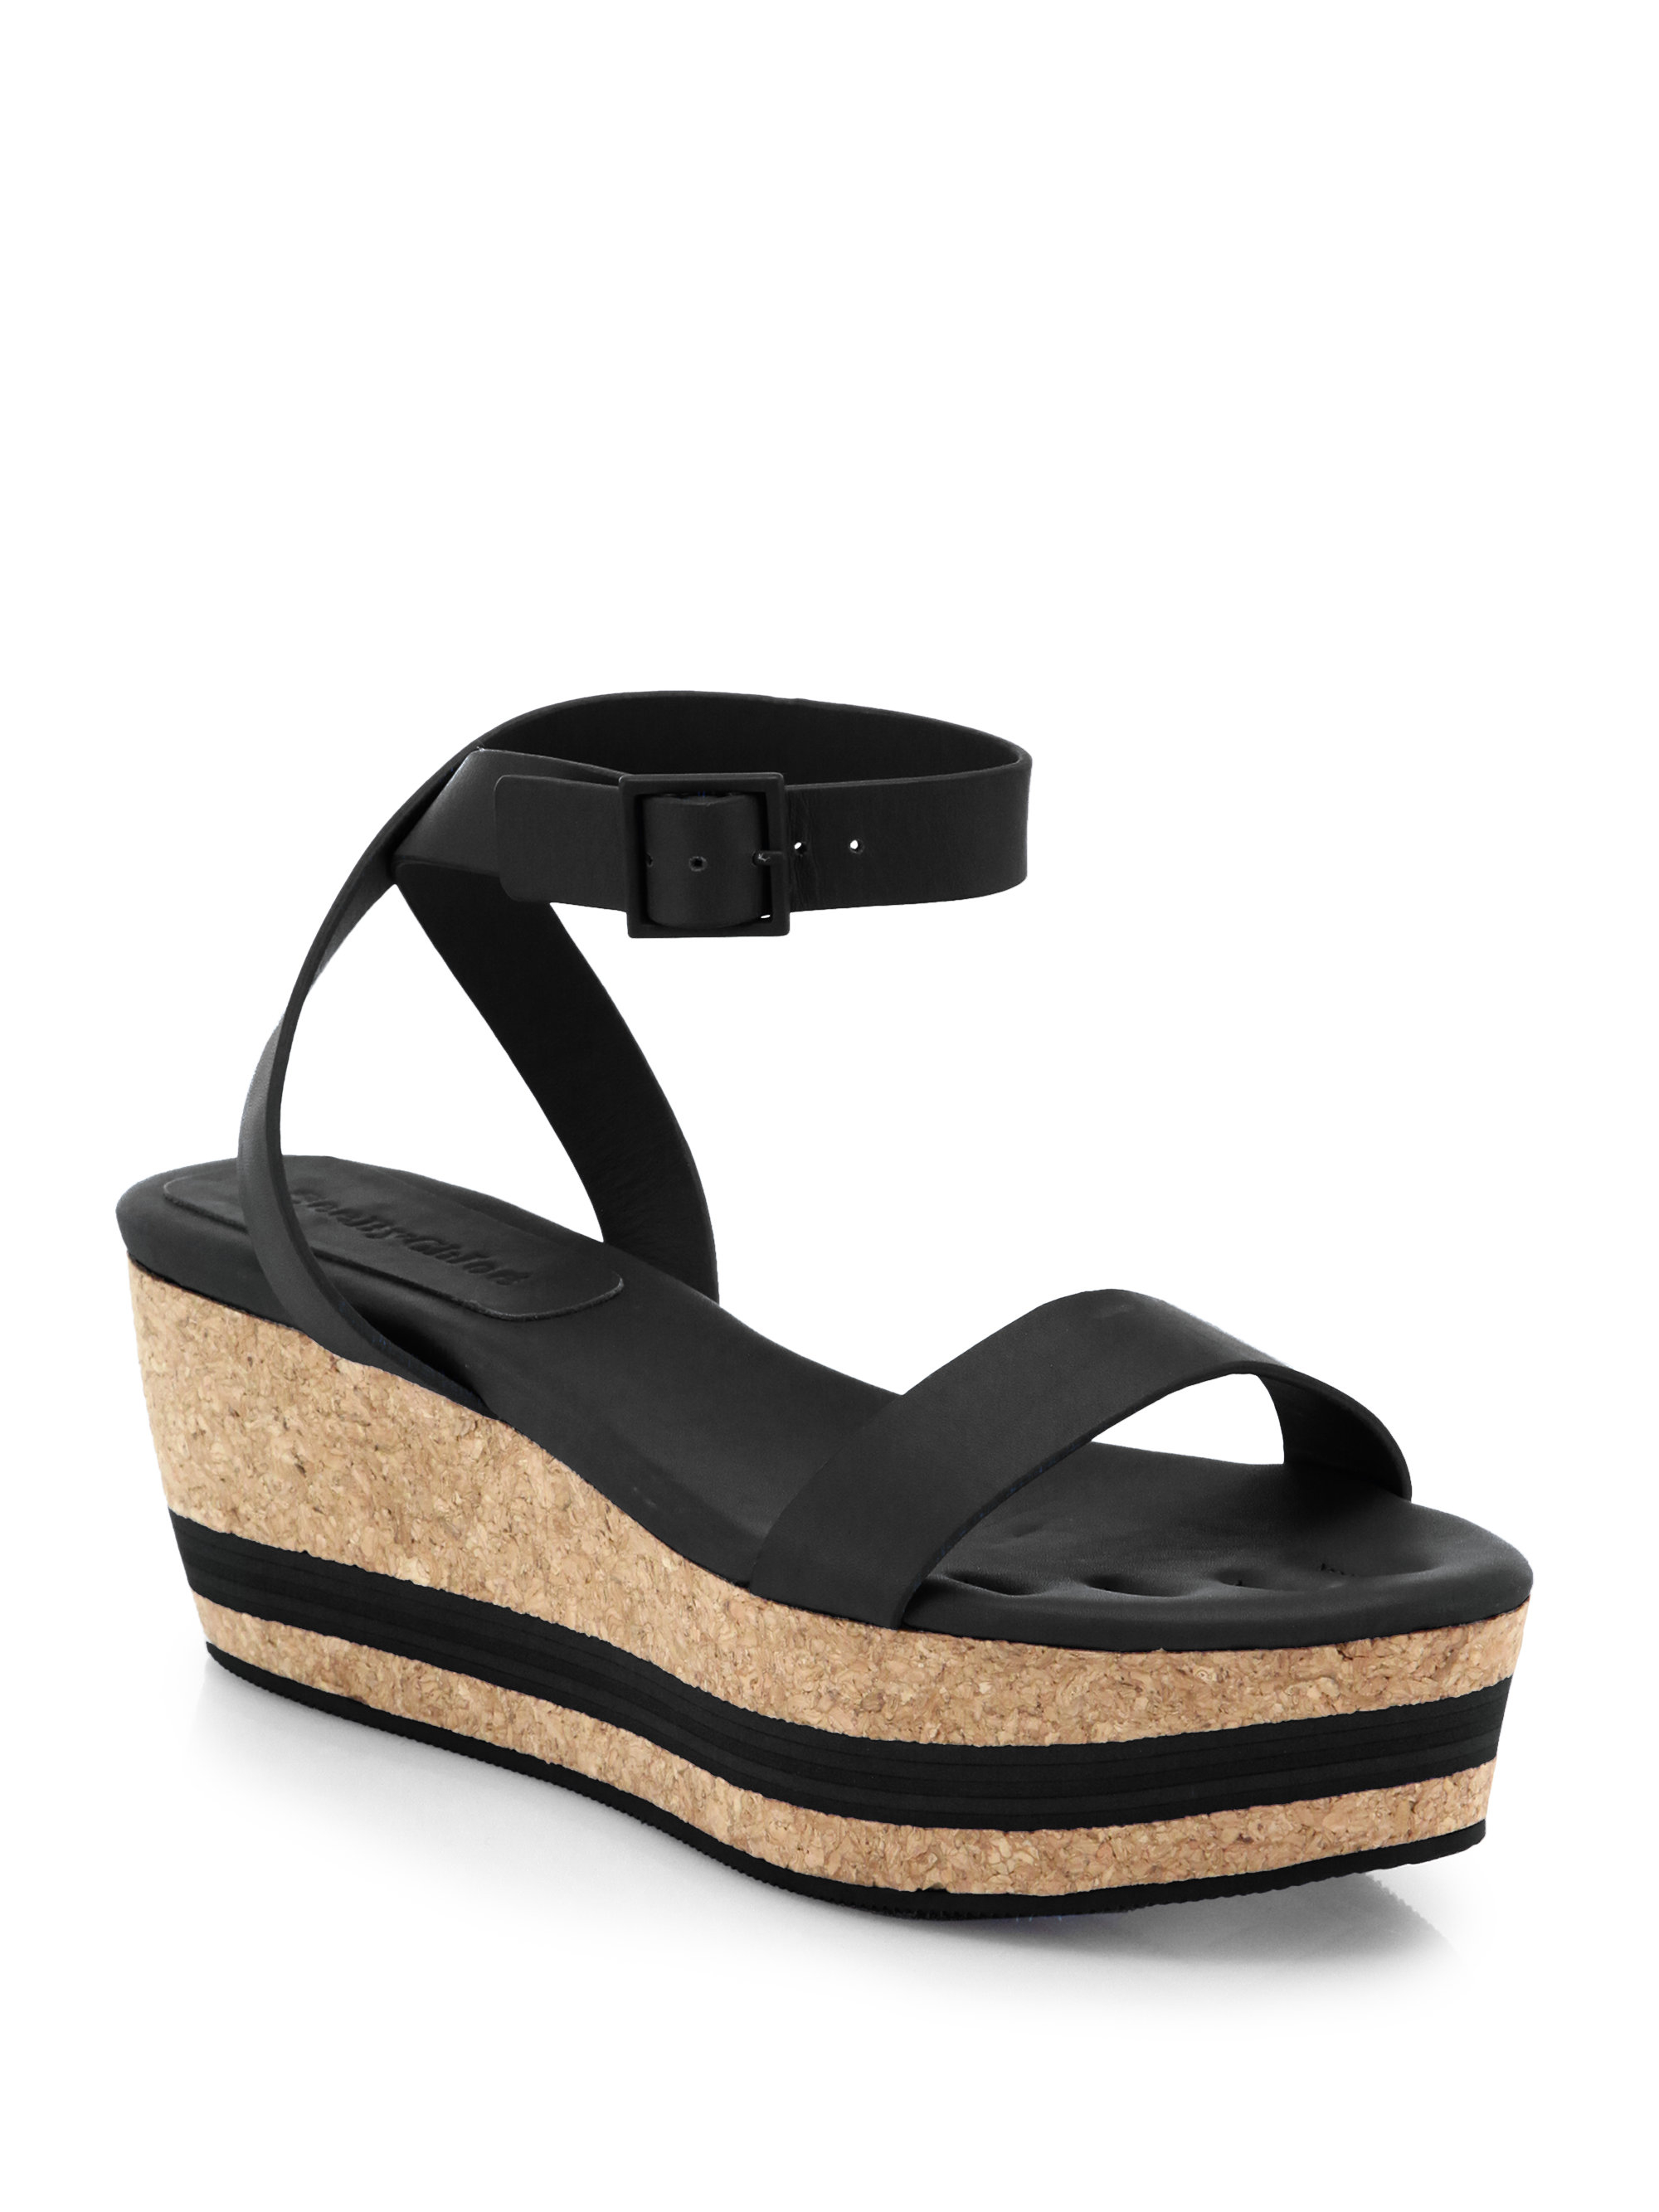 platform sole mules - Black Chlo</ototo></div>                                   <span></span>                               </div>             <div>                                     <div>                                             <div>                           Information For:                        </div>                                             <ul>                                                     <li>                                                             <div>                                                                     <a href=